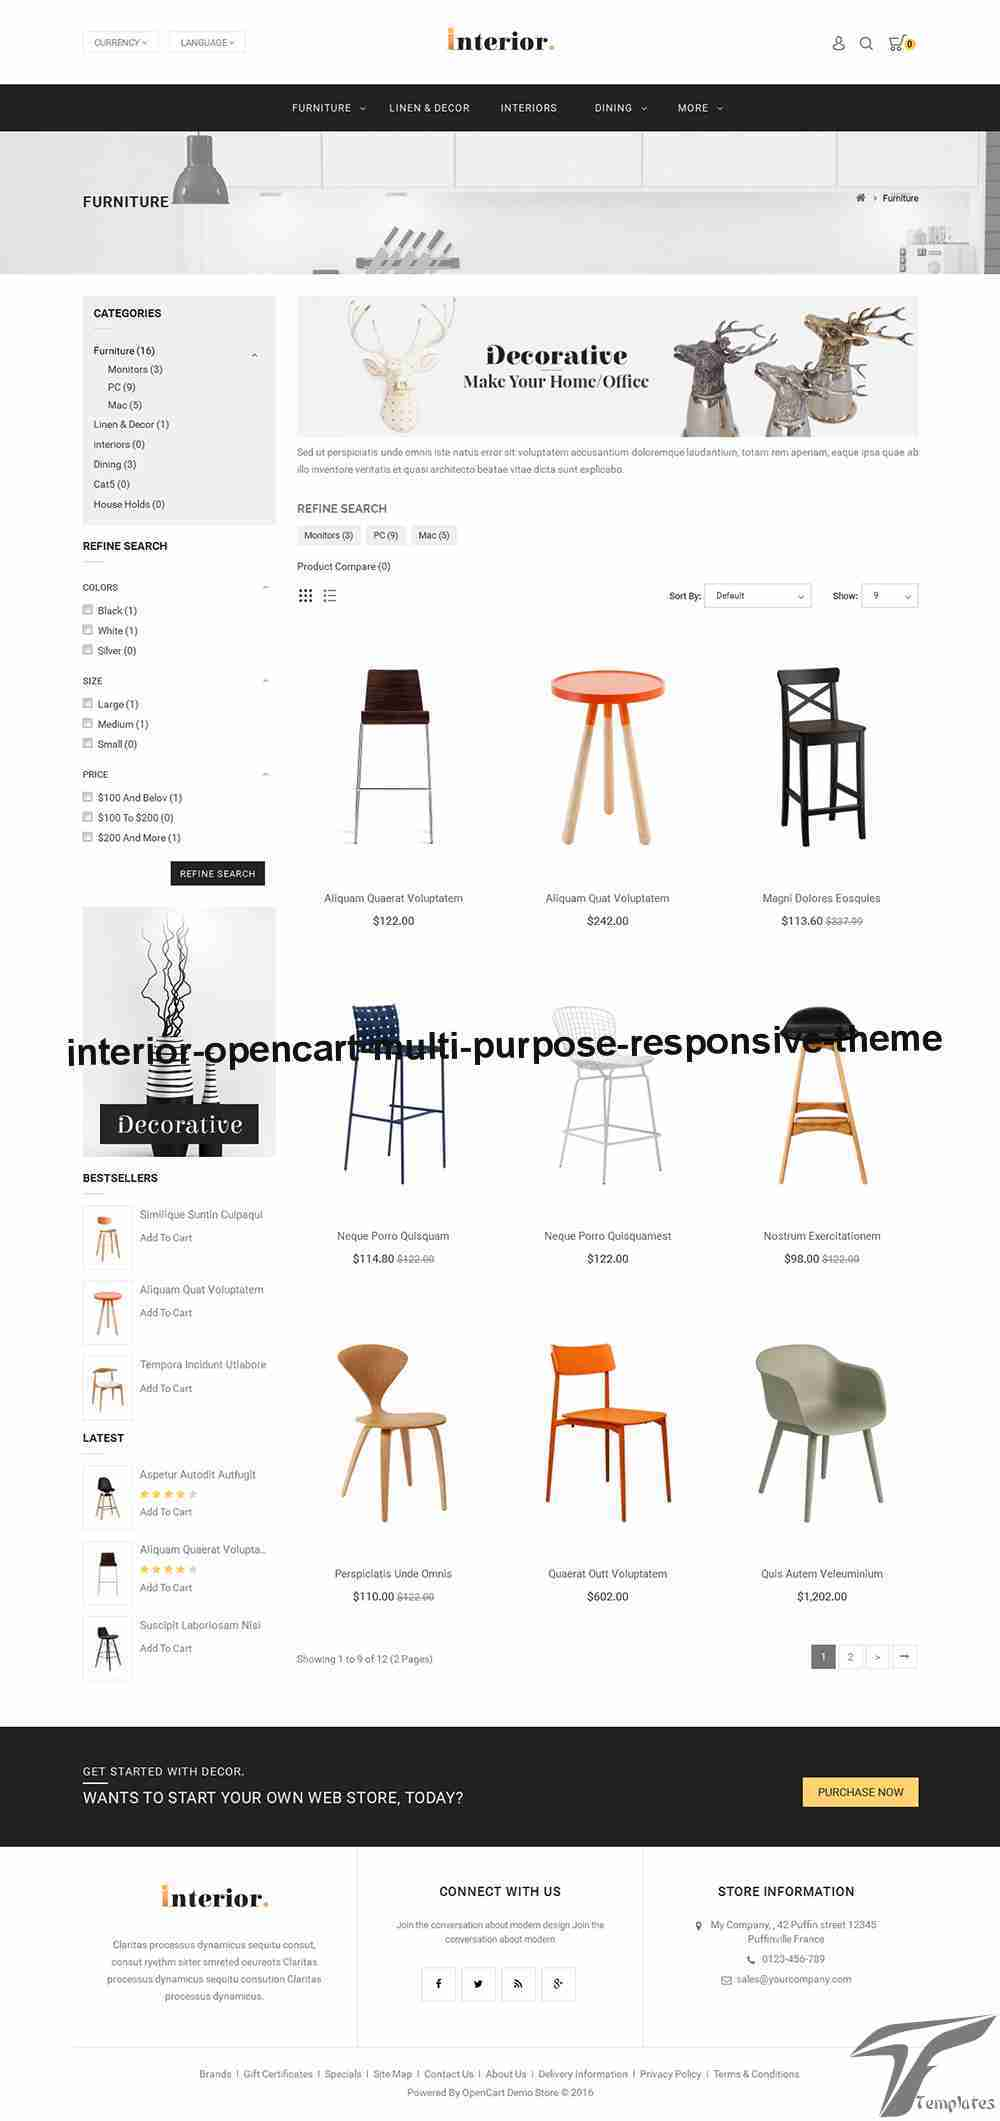 https://images.besthemes.com/images/h1_interior-opencart-multi-purpose-responsive-theme10-_-196005198/09.Categorypage.jpg